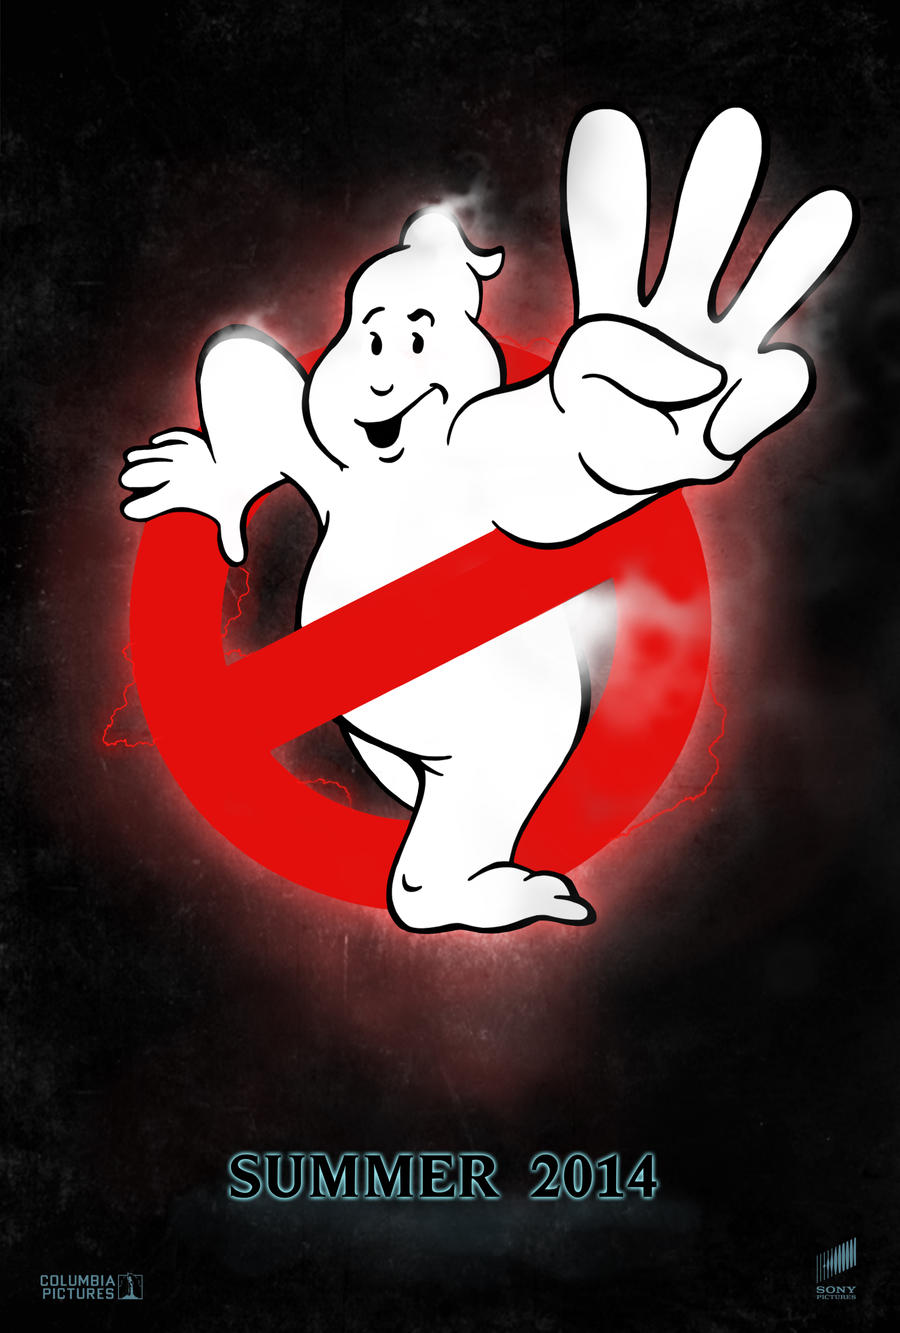 Ghostbusters 3 Wallpaper Ghostbusters 3 Teaser ...